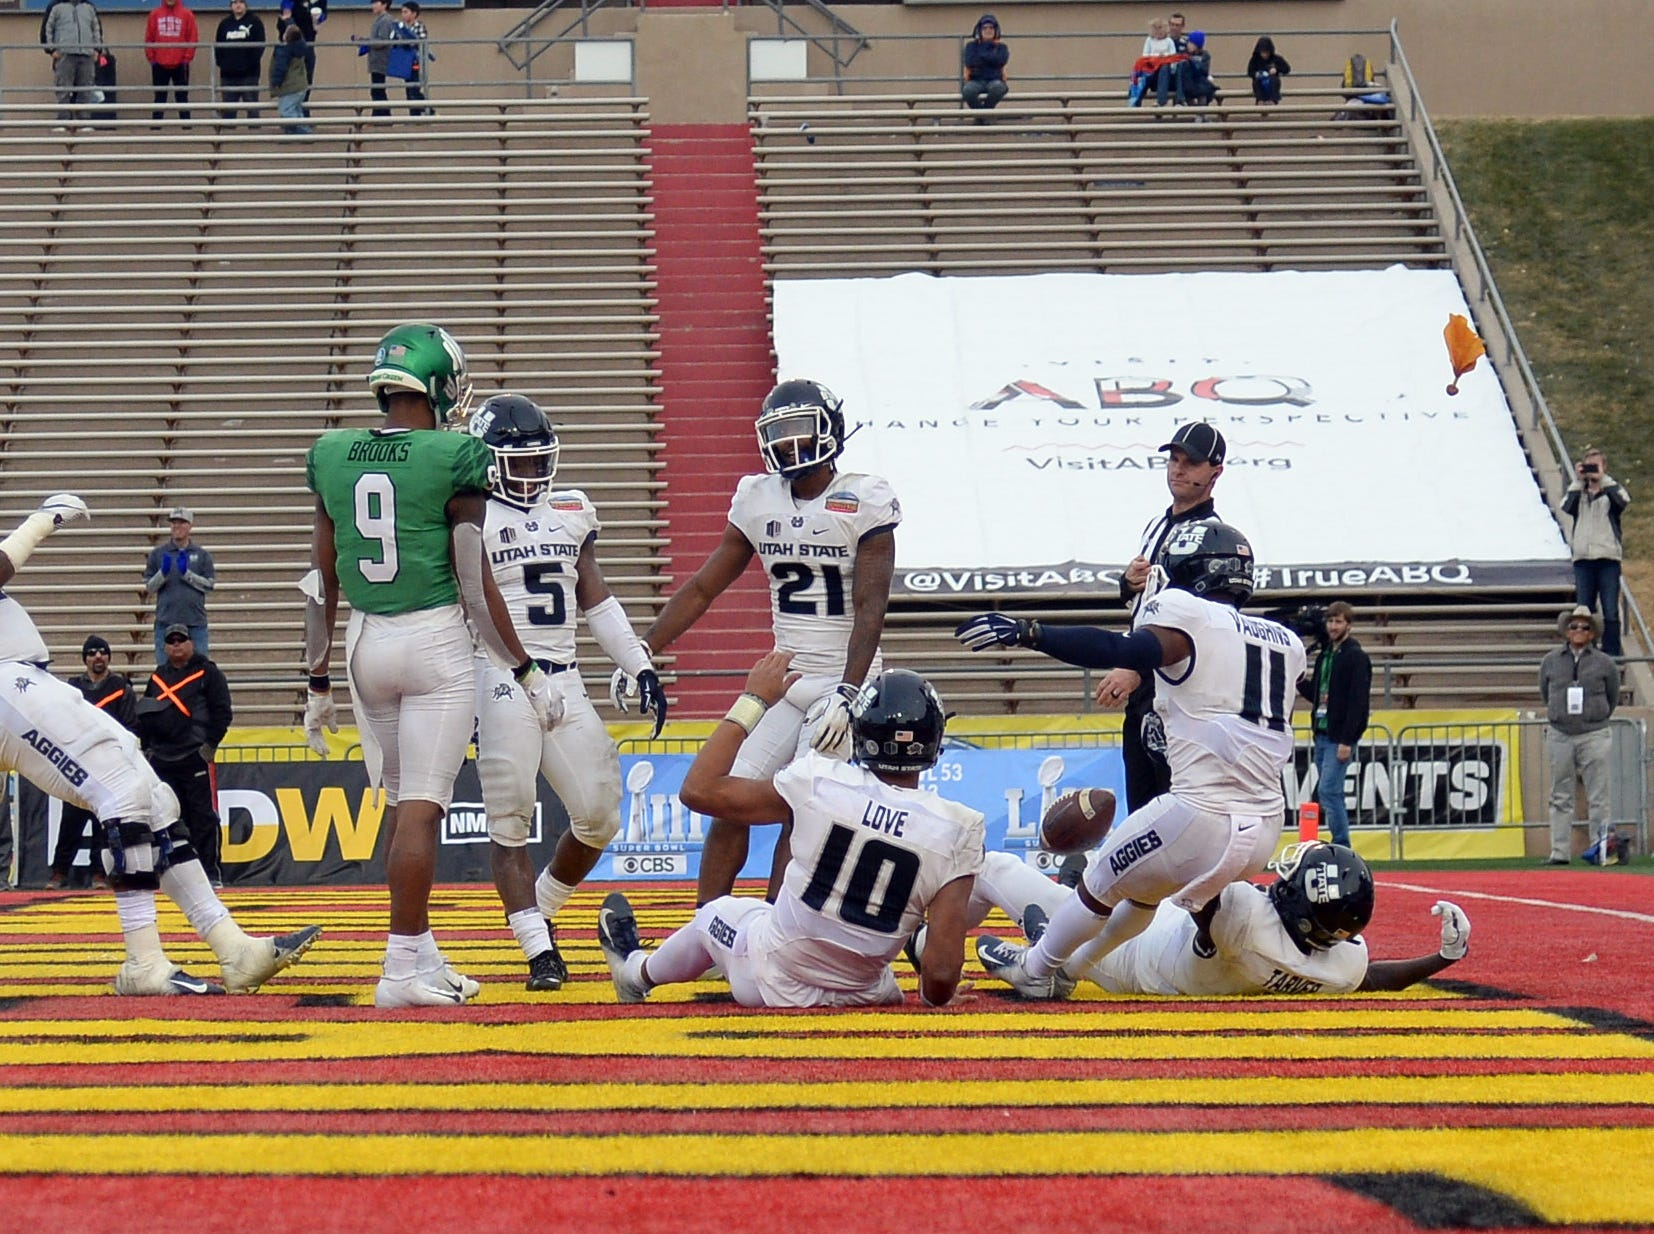 Utah State Aggies players celebrate a touchdown against the North Texas Mean Green in the New Mexico Bowl.